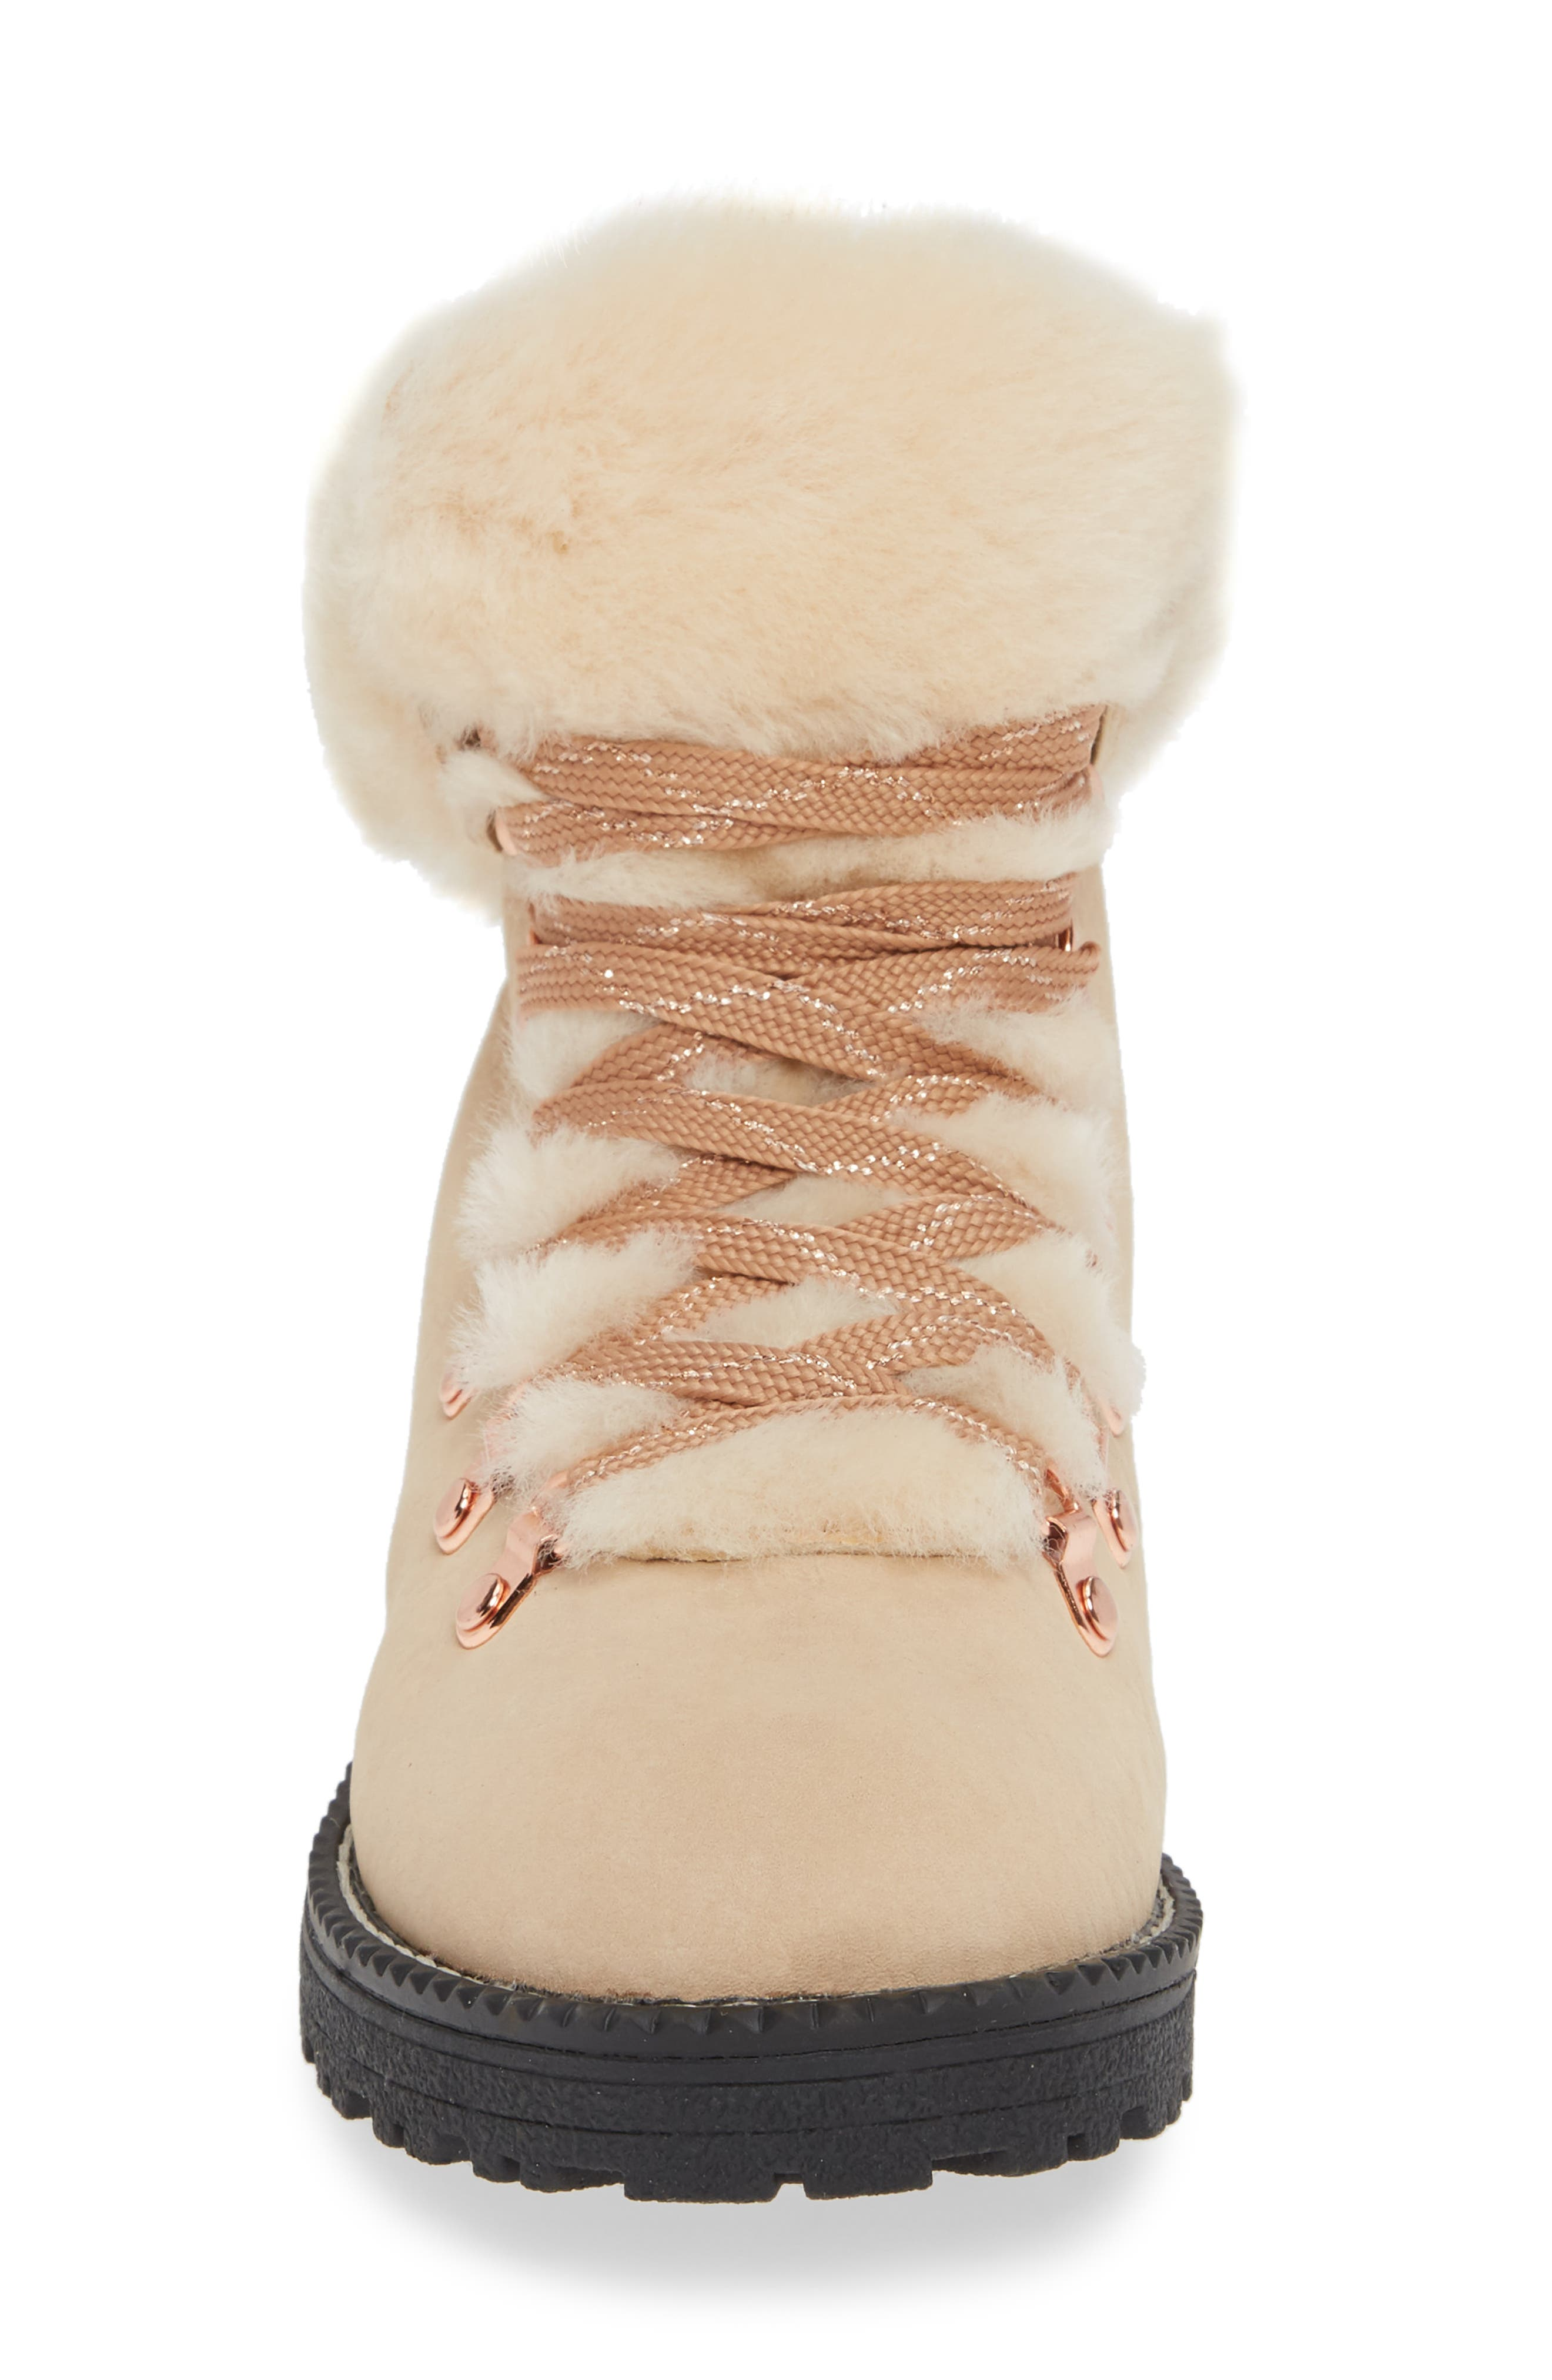 Nordic Genuine Shearling Cuff Winter Boot,                             Alternate thumbnail 4, color,                             DUNE LEATHER